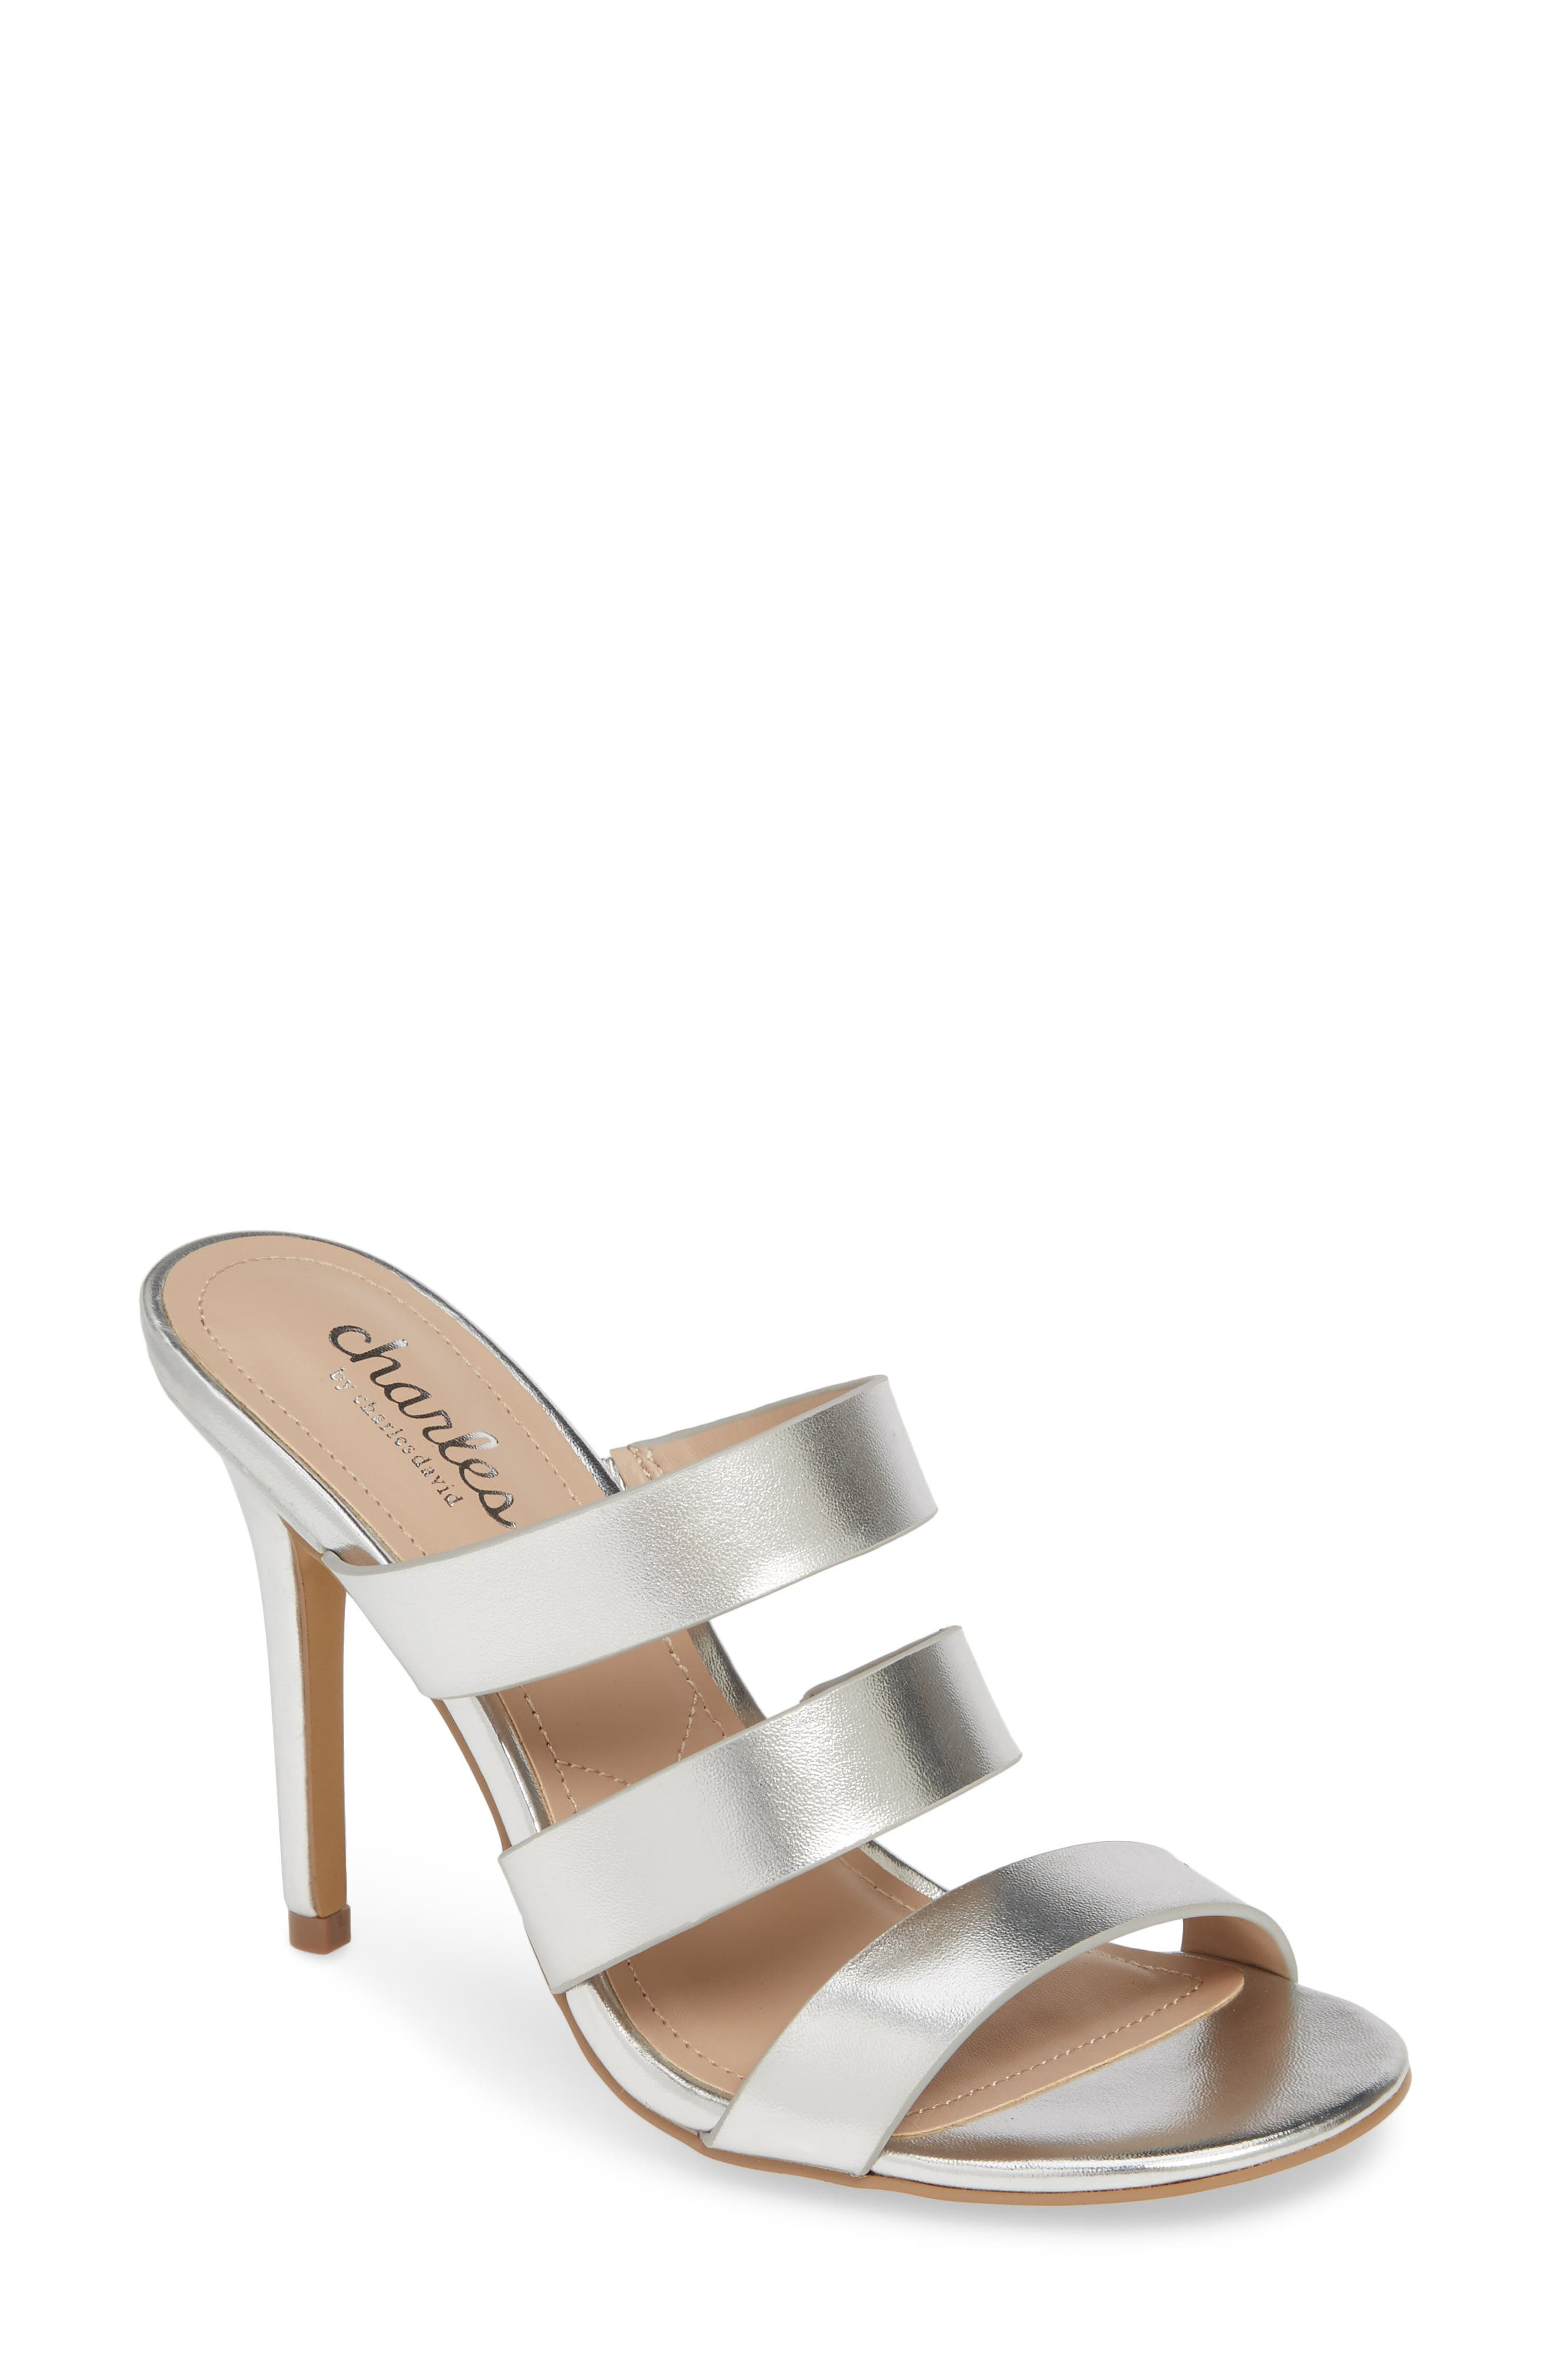 Rivalary Slide Sandal, Main, color, SILVER FAUX LEATHER